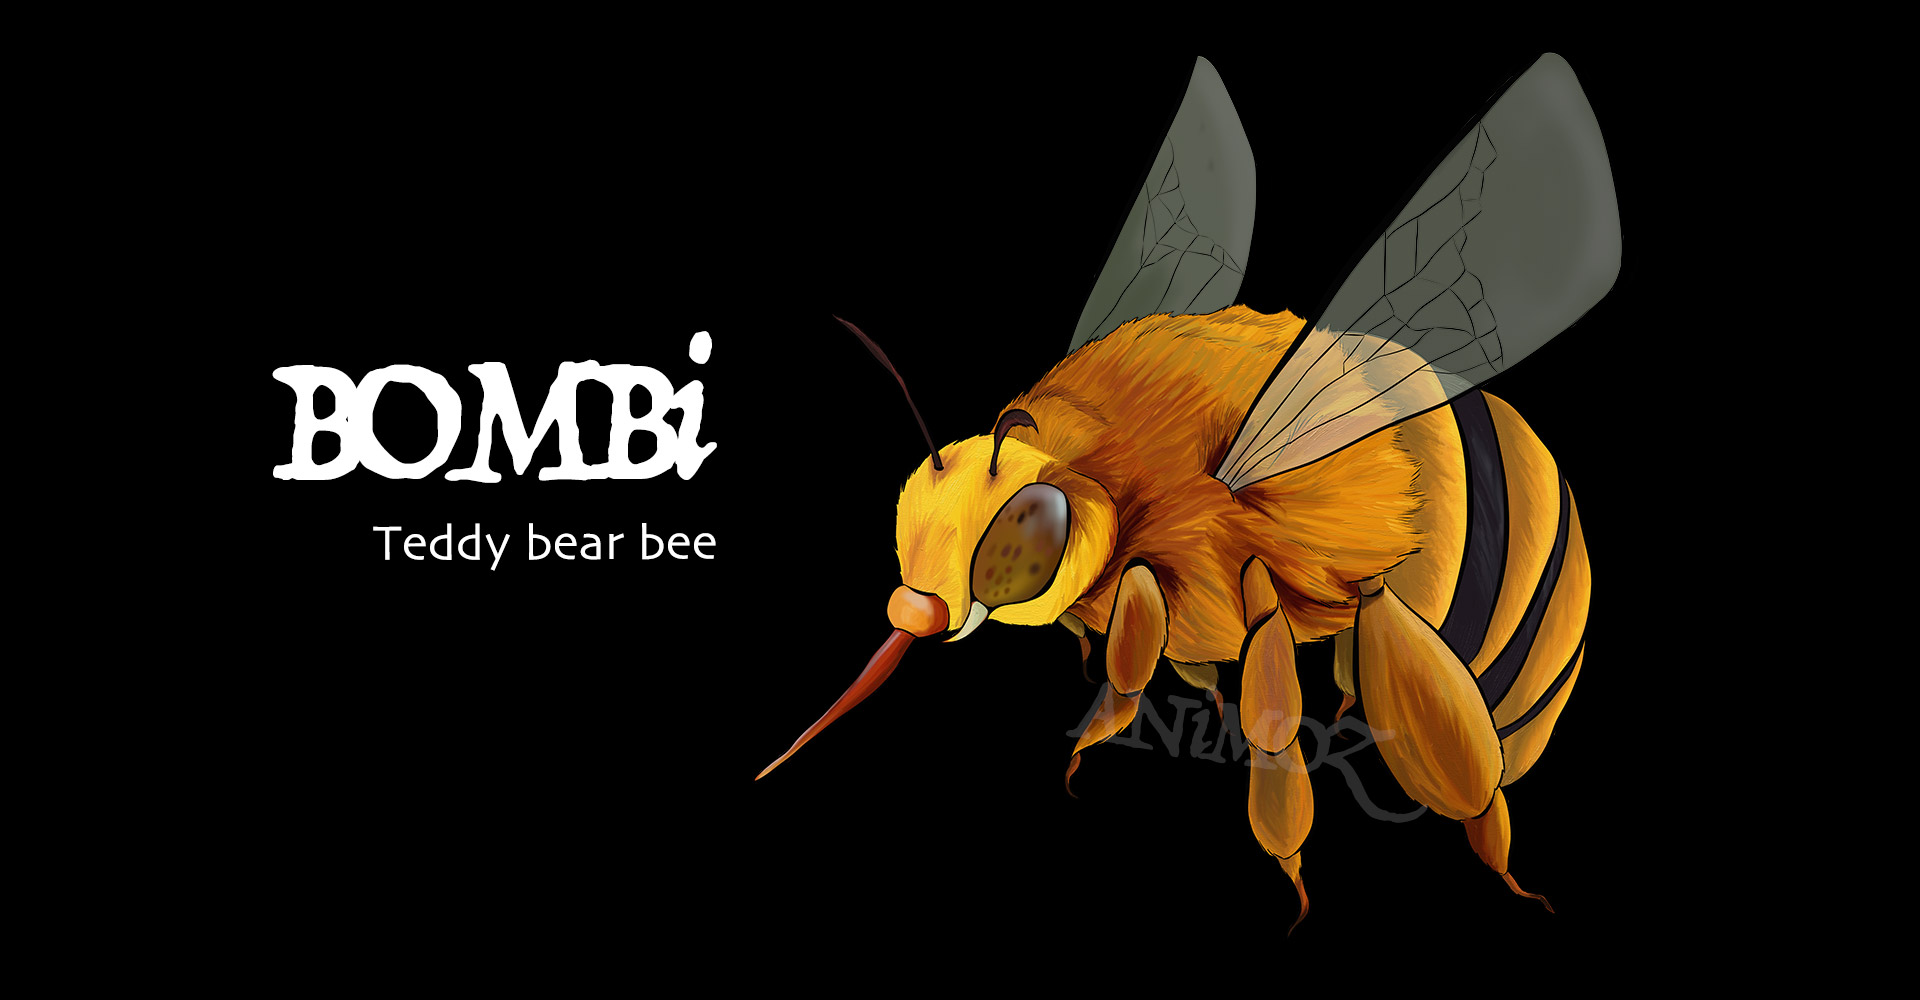 Australian animals - ANiMOZ - Fight for Survival - Teddy Bear Bee - Pollinator - Save the Bees